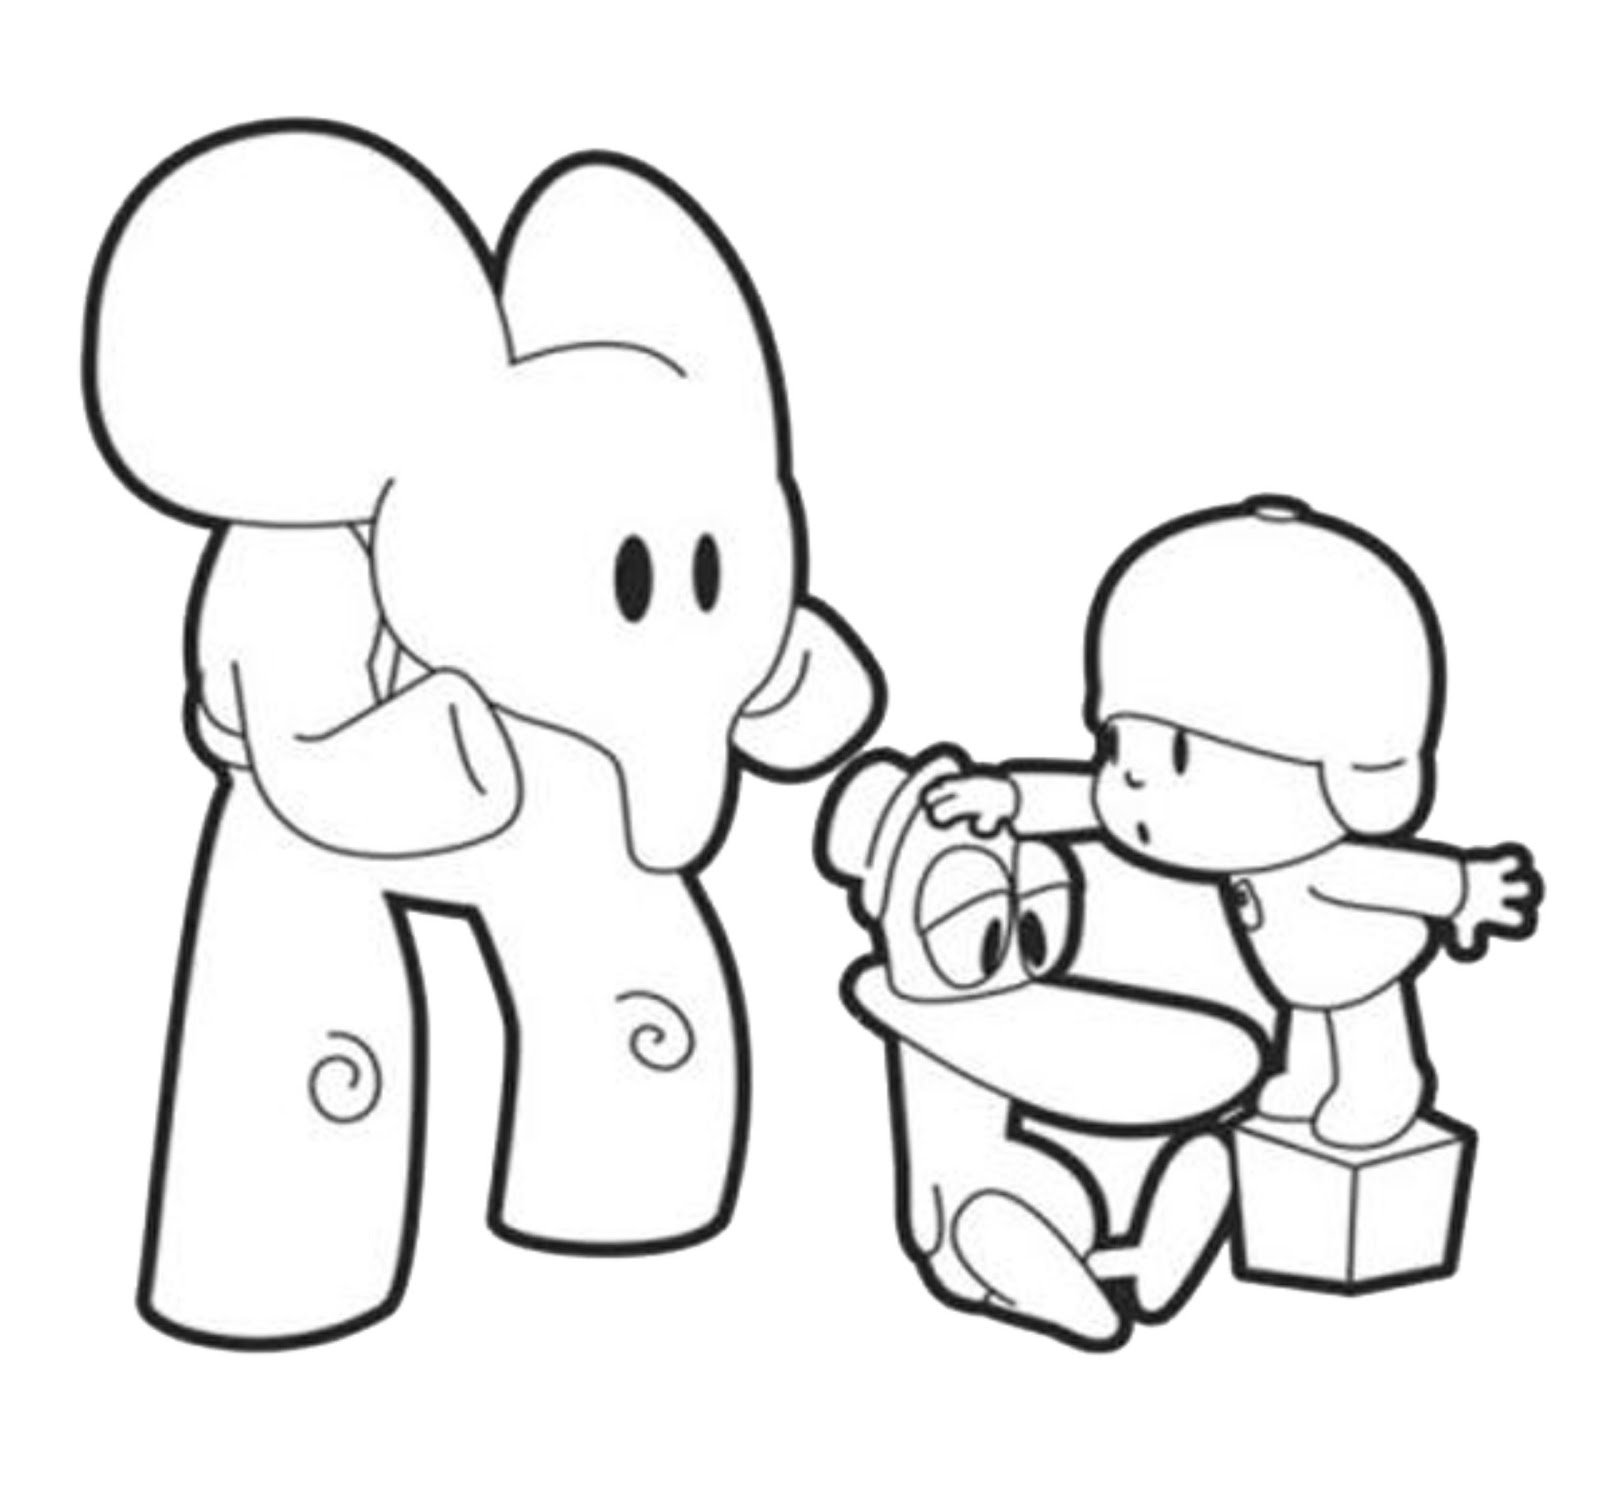 transformers coloring pages free - pocoyo coloring pages